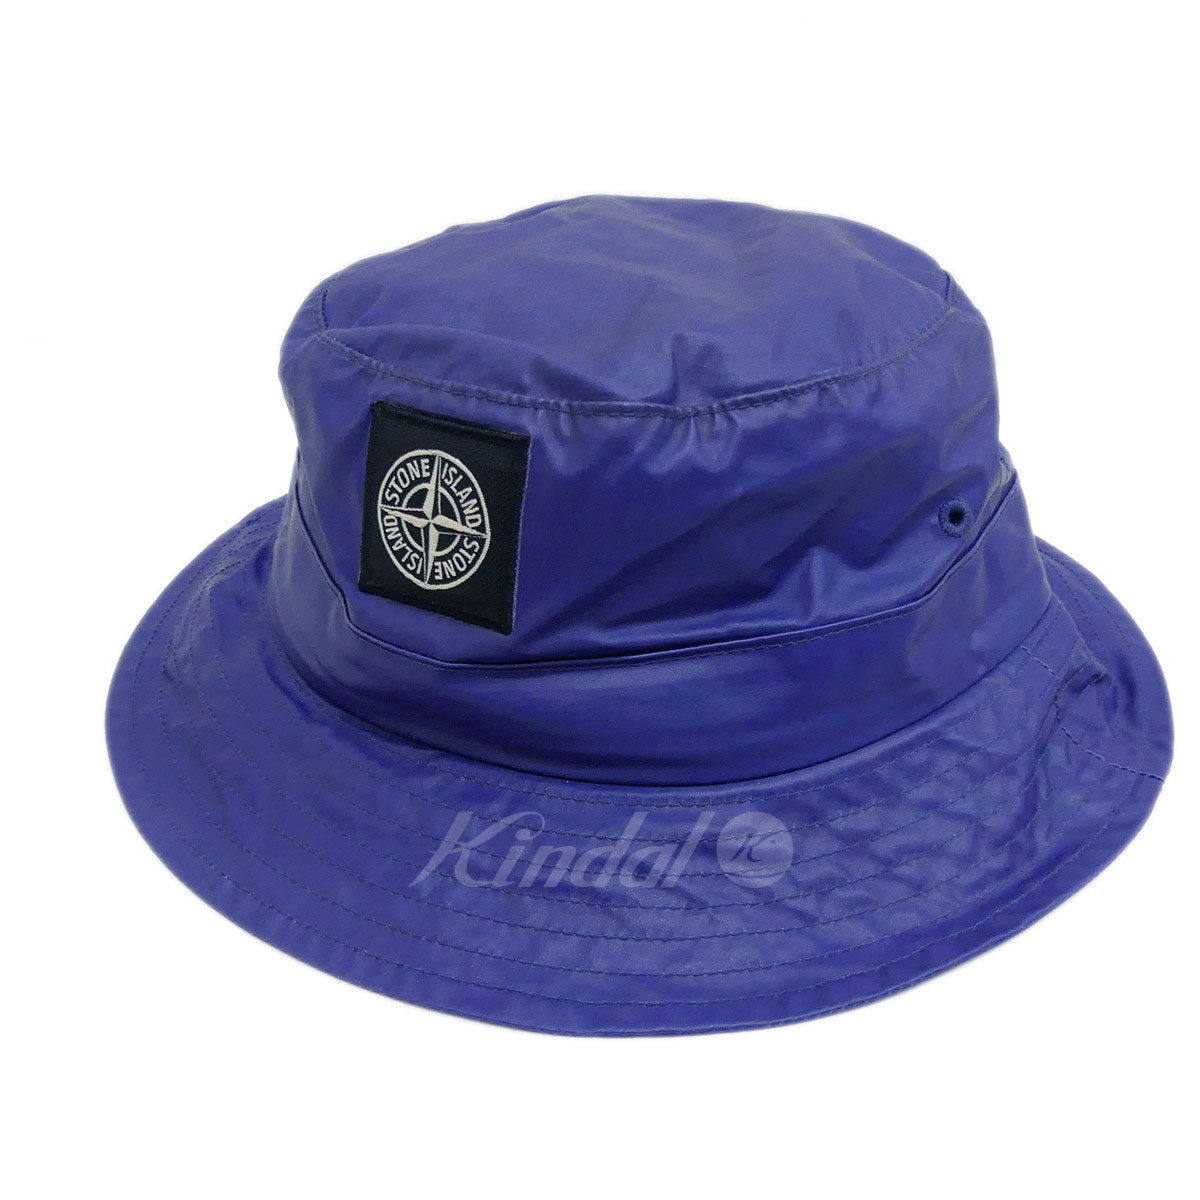 【中古】SUPREME × STONE ISLAND バケットハット Heat Reactive Crusher Hat 【056998】 【KIND1327】